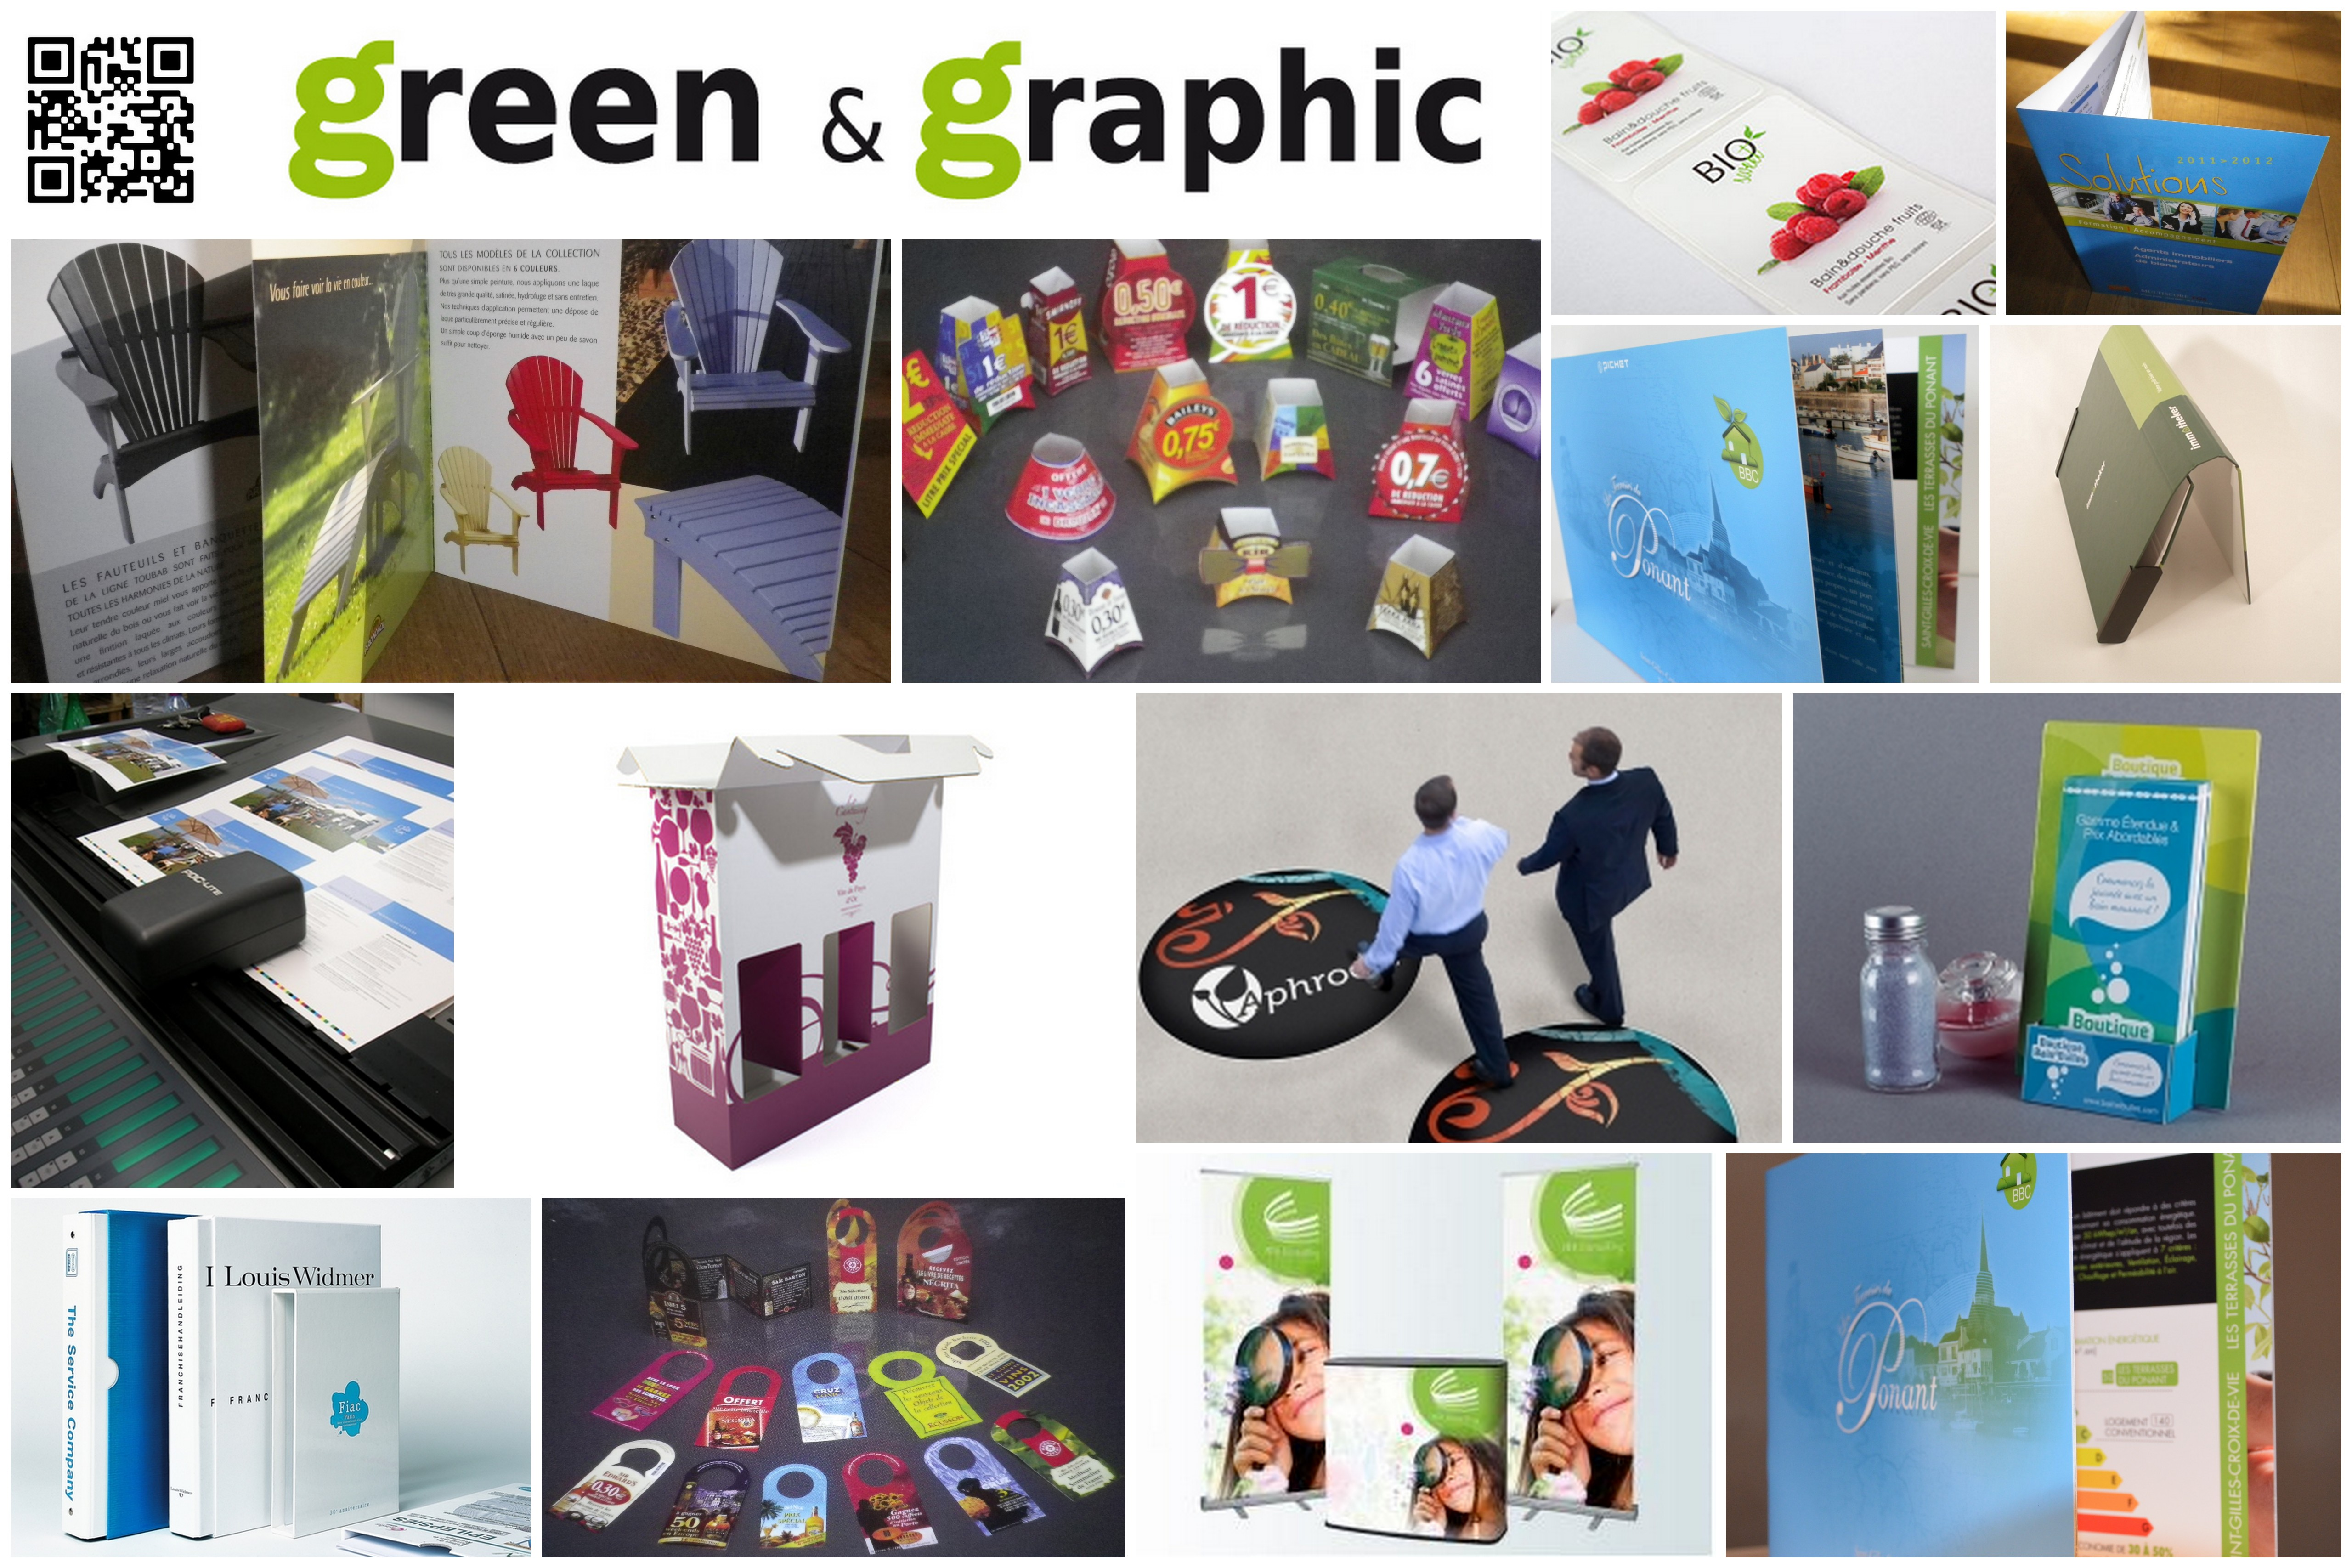 green et graphic